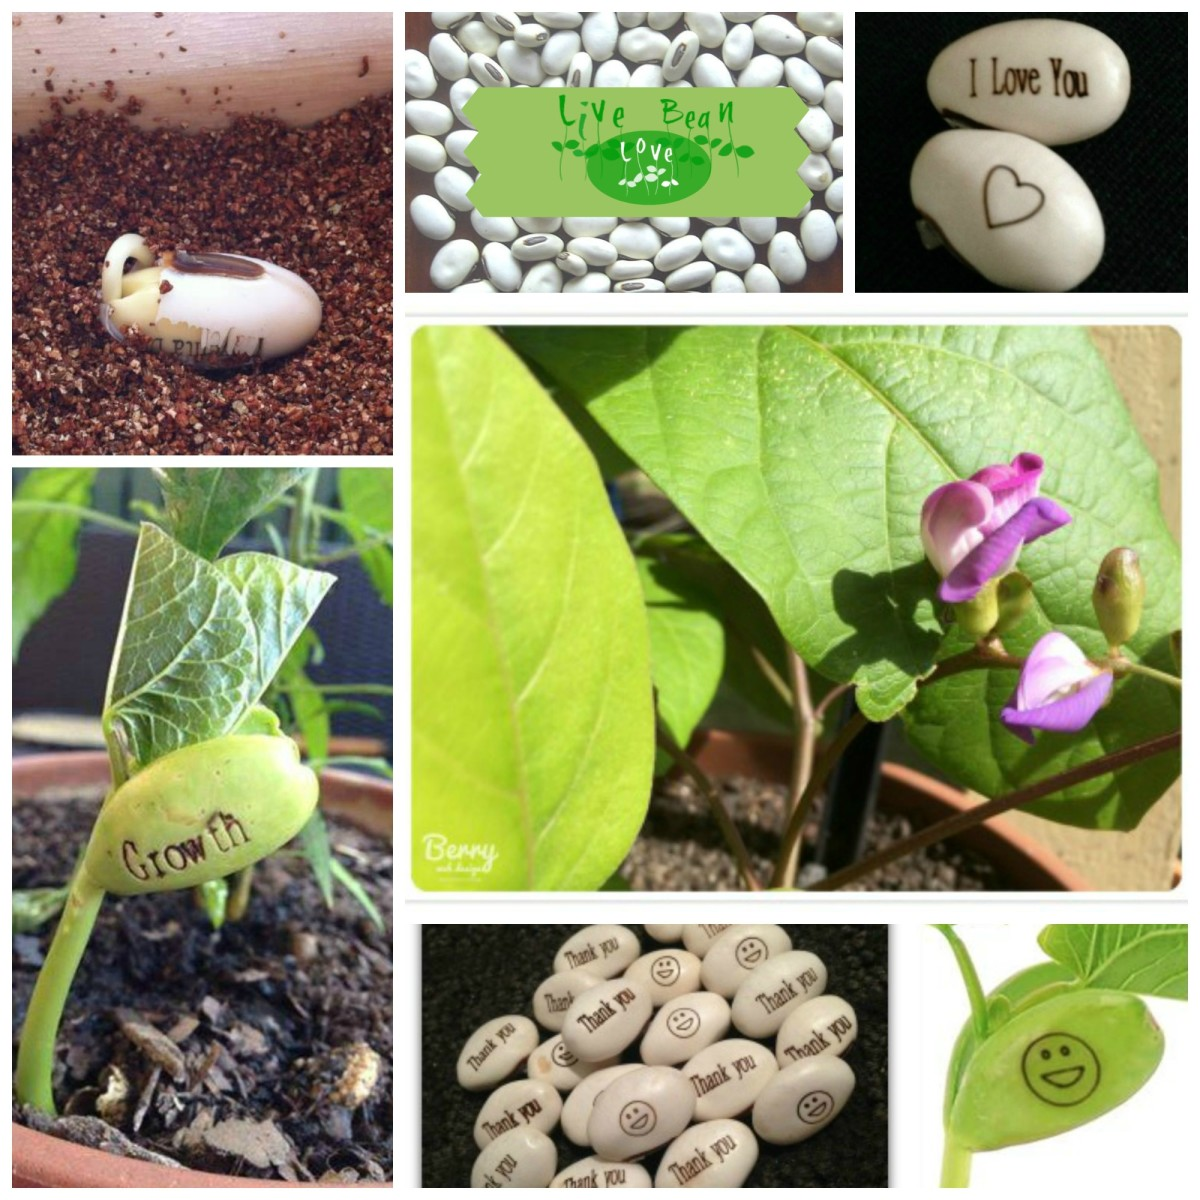 Magic message bean plants - engraved with words and images that reveal themselves when the bean sprouts.